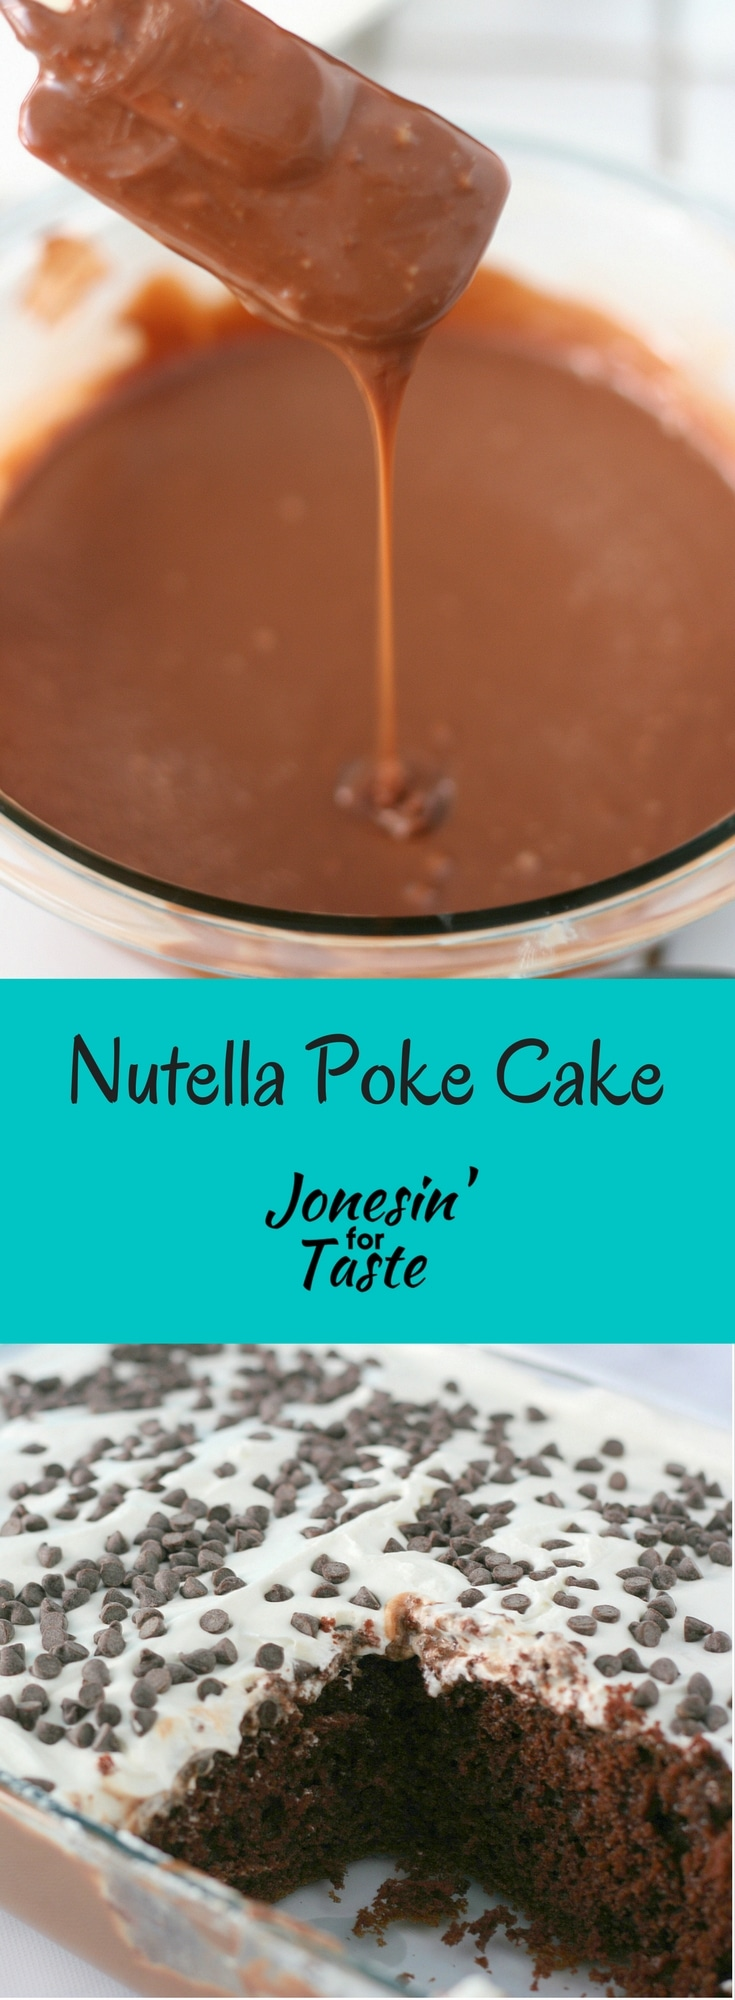 Dress up a chocolate cake mix with a nutella glaze and cool whip for a wonderfully moist and flavorful Easy 5 Ingredient Chocolate Nutella Poke Cake. #jonesinfortaste #choctoberfest #pokecakes #nutellarecipes #easychocolatecakes